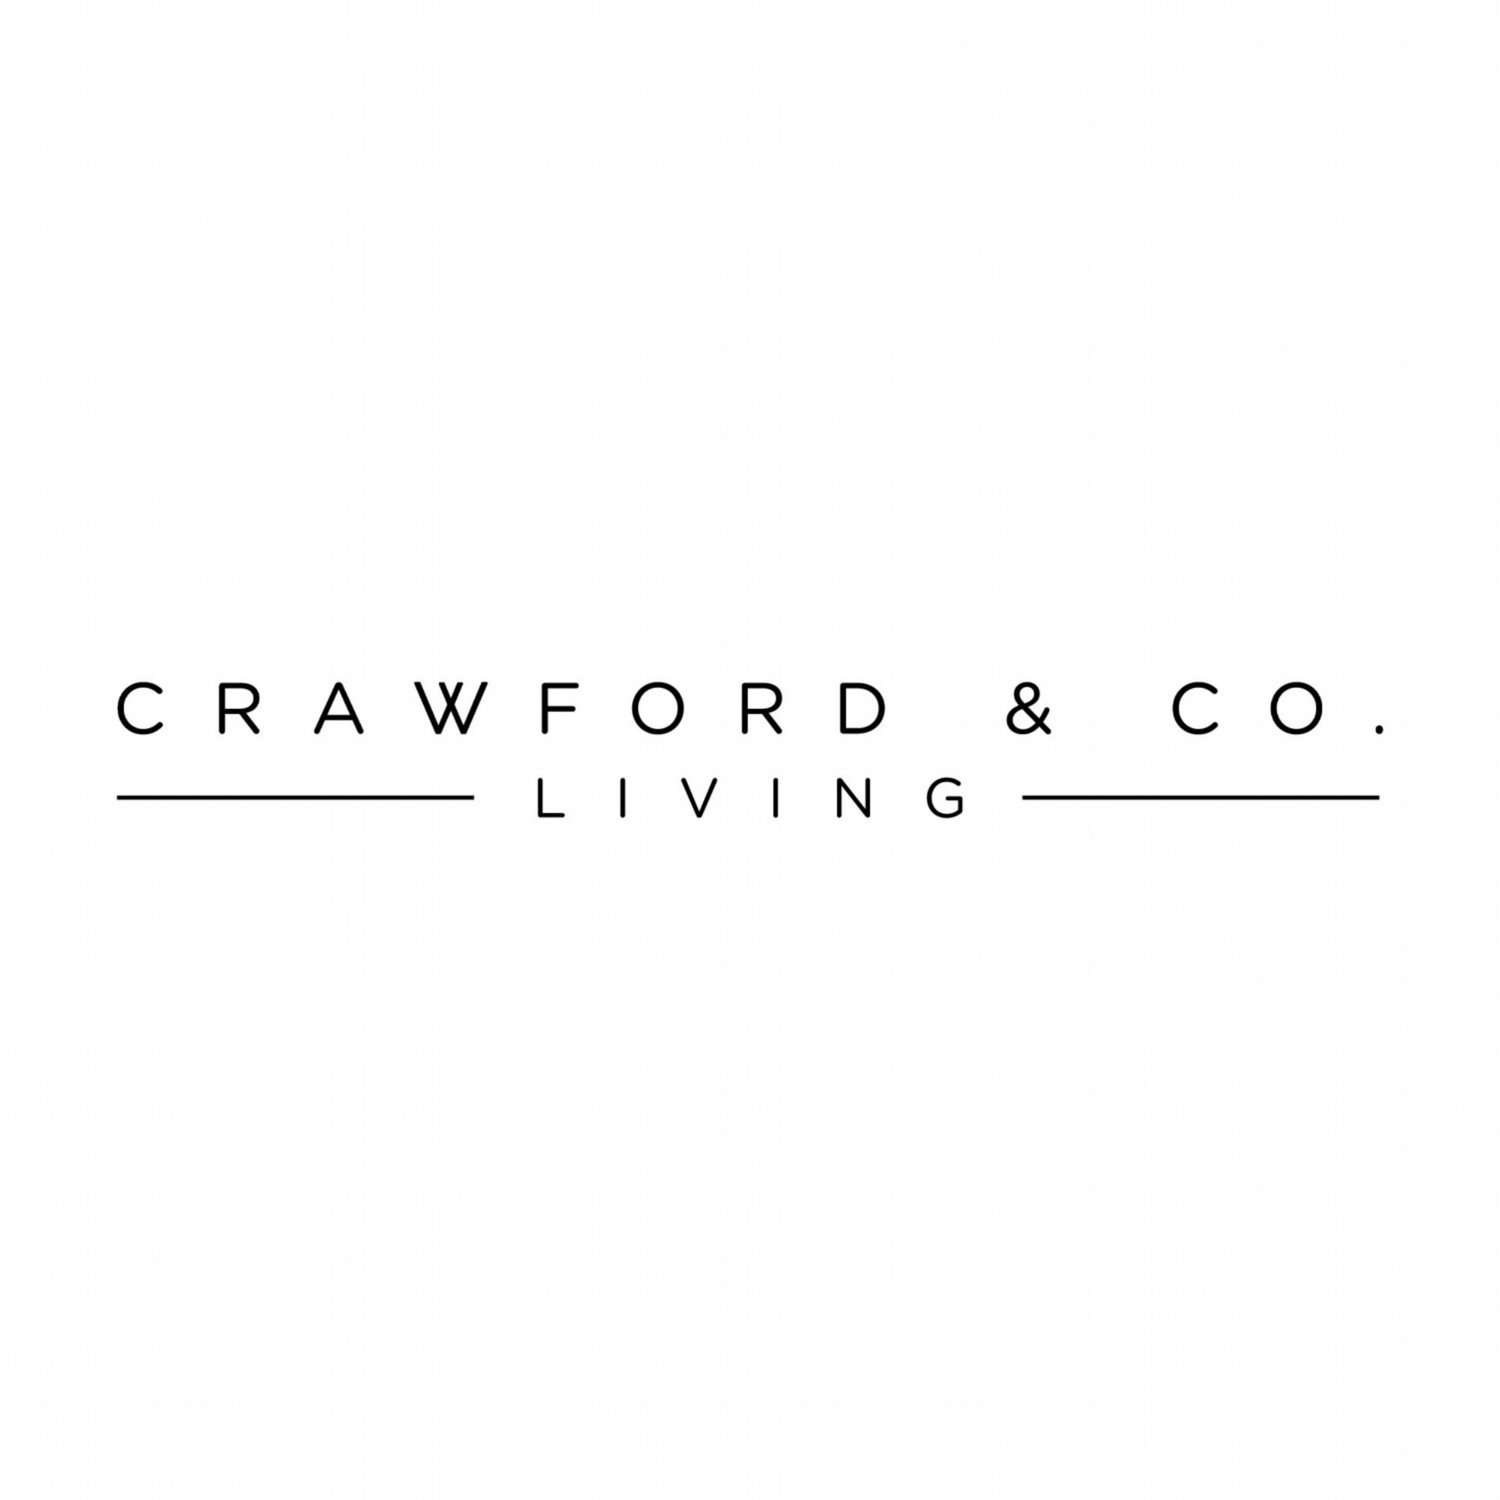 Crawford & Co.